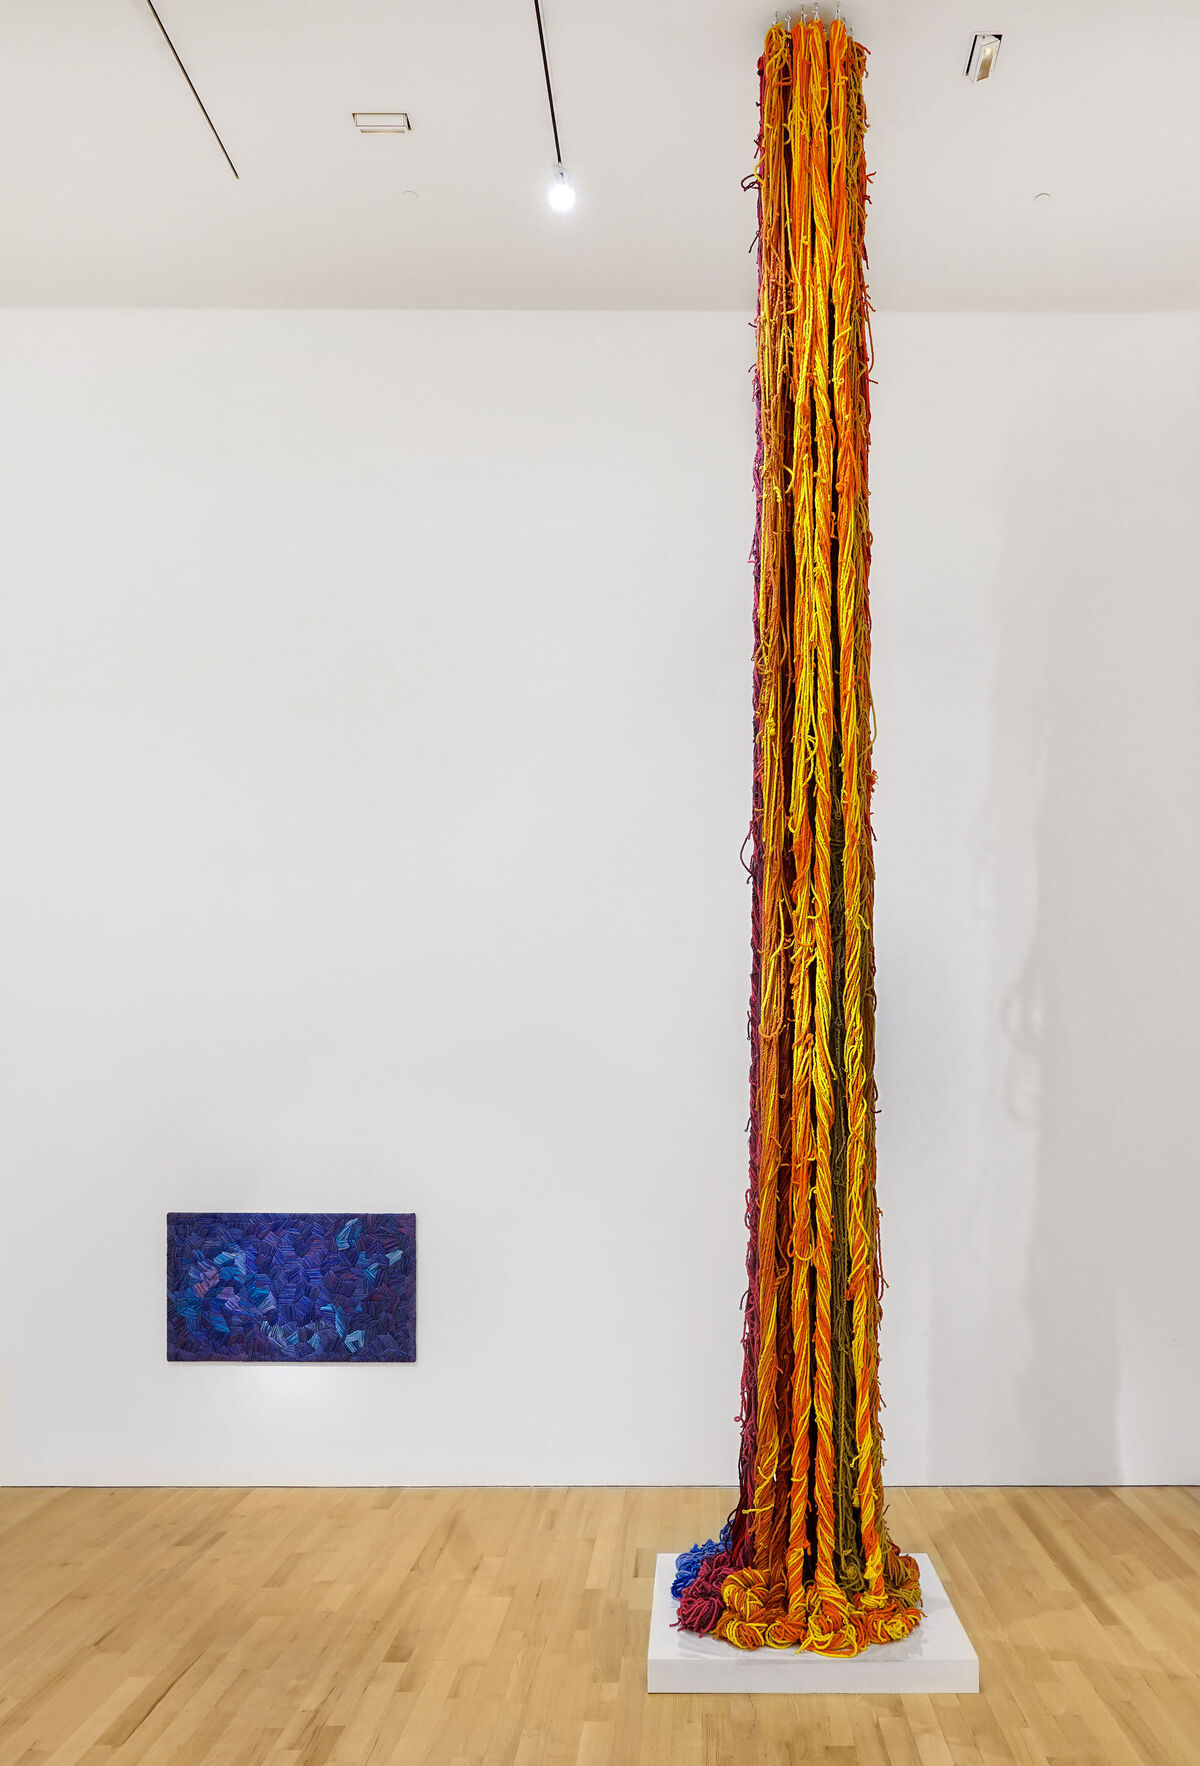 Installation view of Sheila Hicks, Blue Gros Point, ca. 1990, and Questioning Column, 2016, at The Bass, 2019. Photo by Zachary Balber. Courtesy of The Bass, Miami Beach.